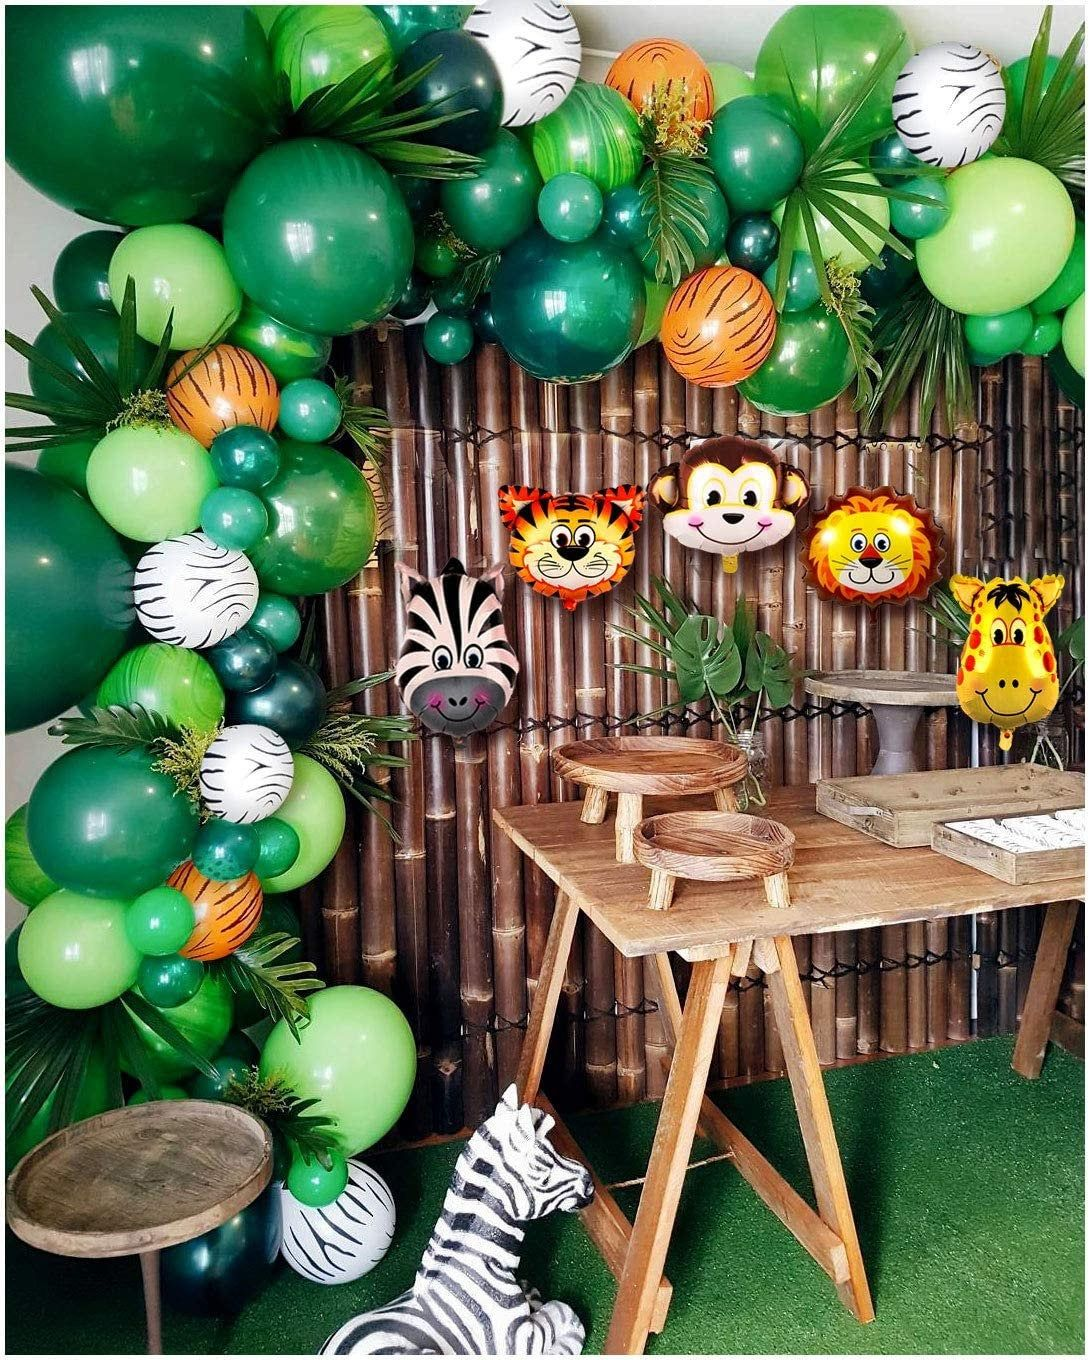 Jungle Party Balloon Garland Kit In Green And Orange Zebra Etsy In 2020 Safari Theme Party Jungle Baby Shower Theme Baby Shower Safari Theme